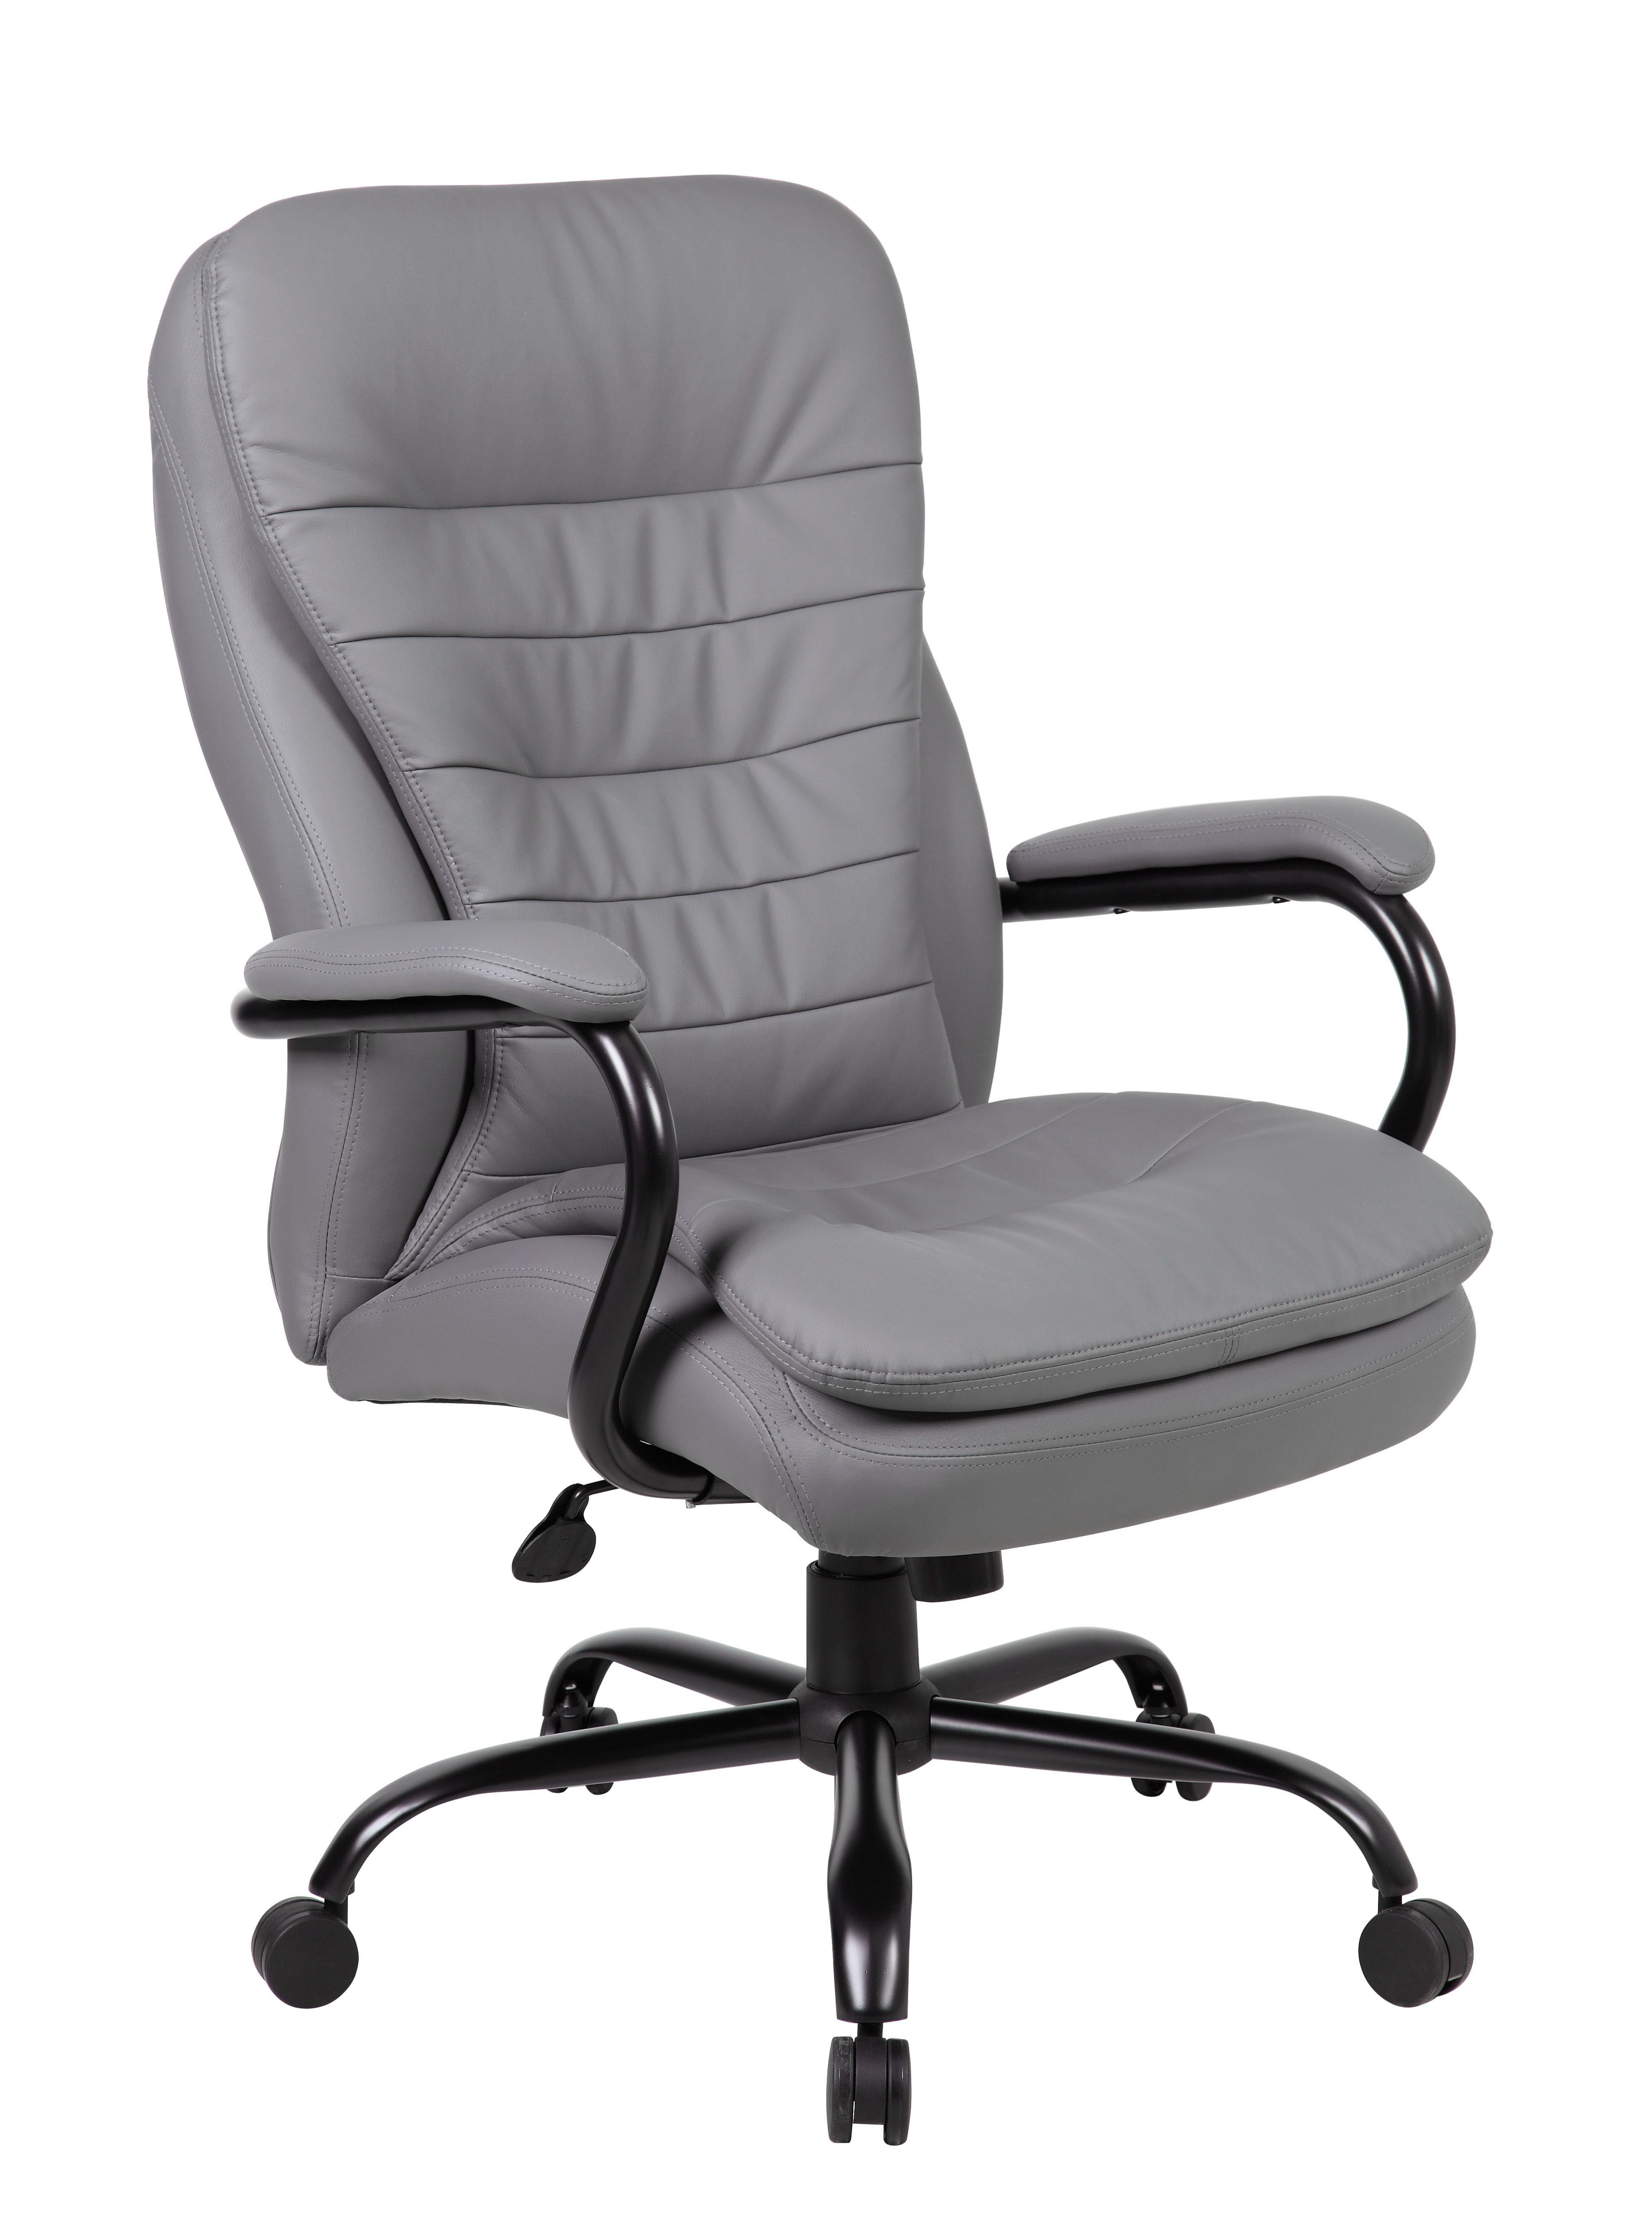 office chair for tall man hanging world market boss heavy duty double plush caressoftplus b991